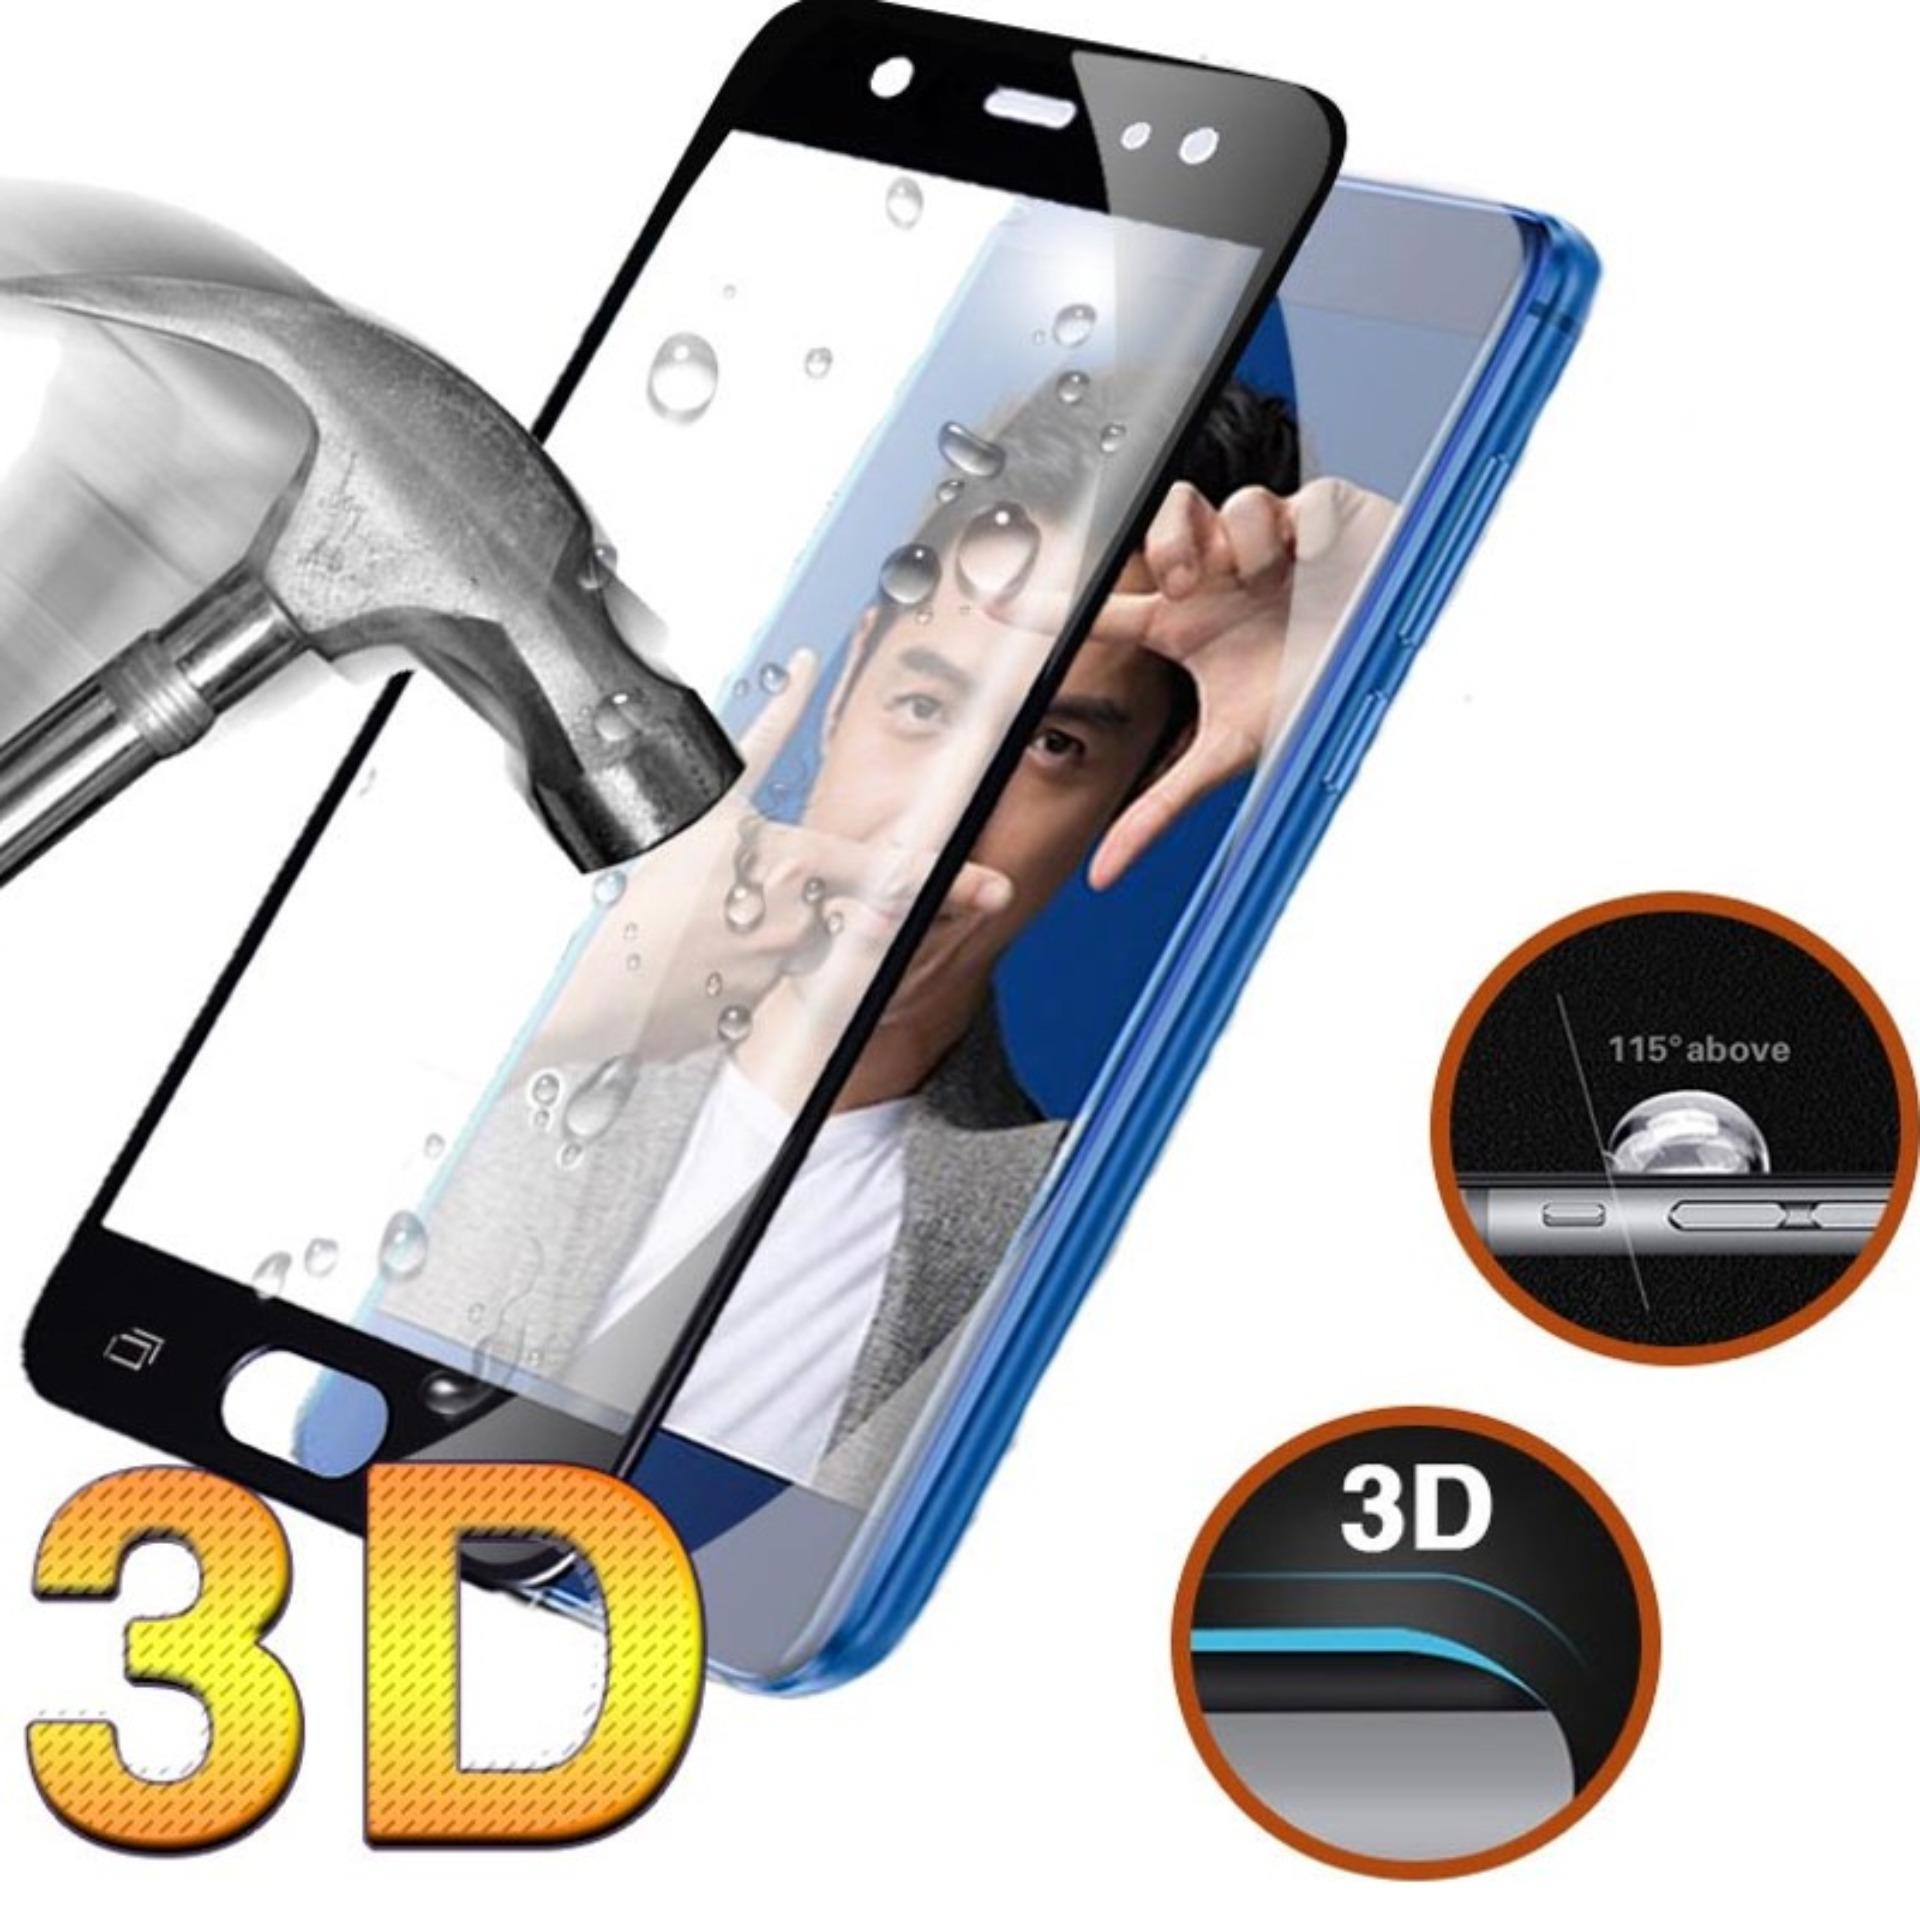 3d Full Cover Tempered Glass Warna Screen Protector For Xiaomi Redmi New Itemtempered Fullwarna Note 4x Gold 3